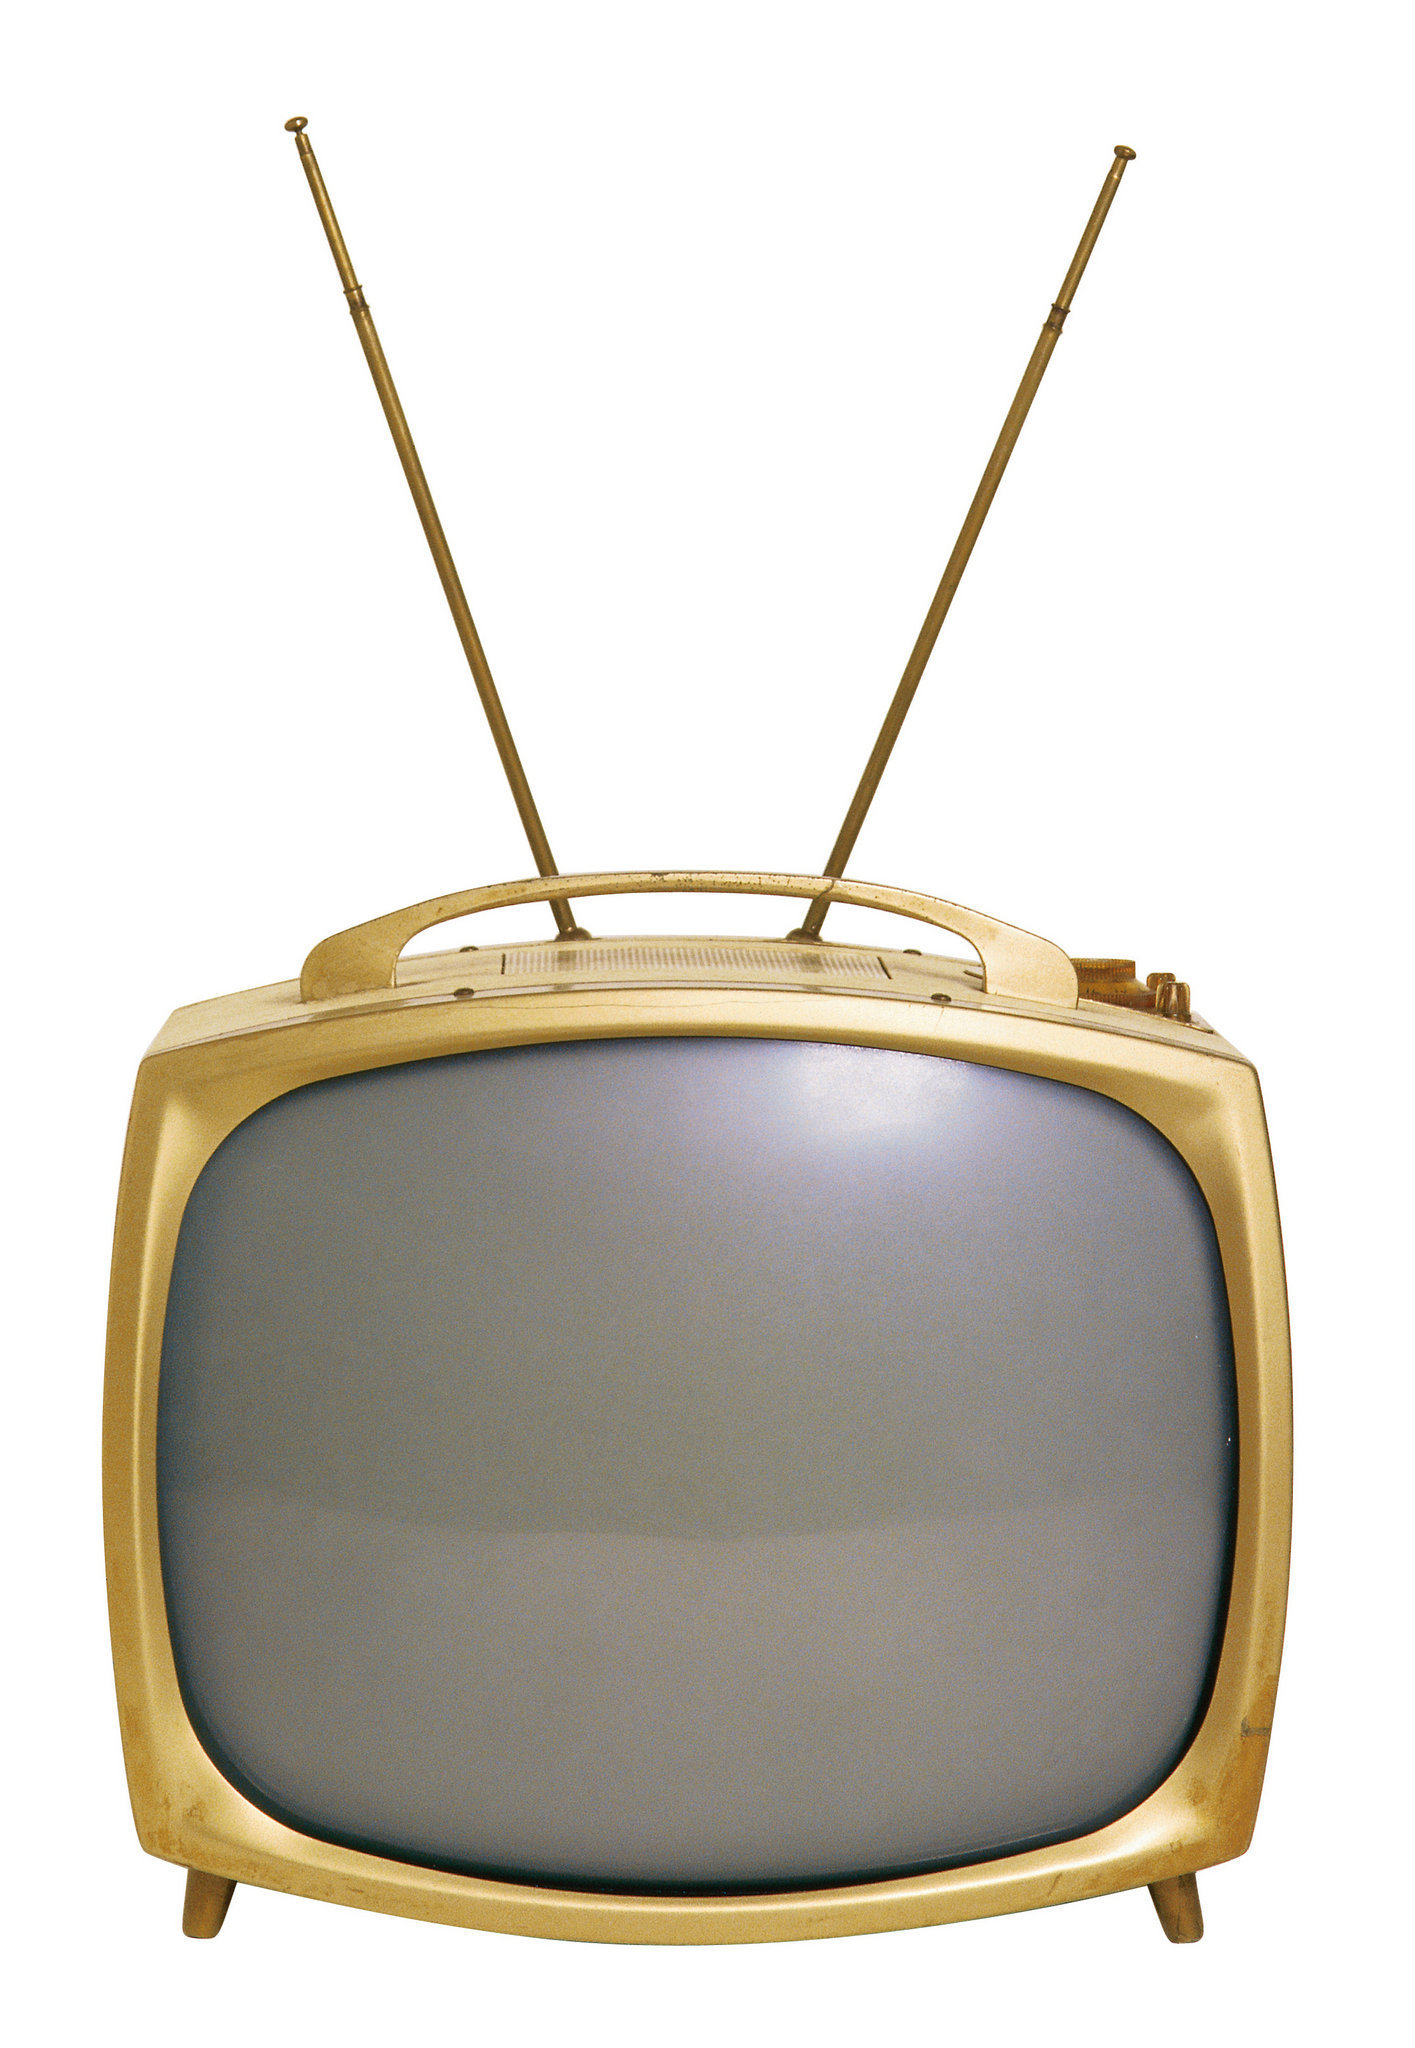 Television antennas are making a surprising comeback in an ...